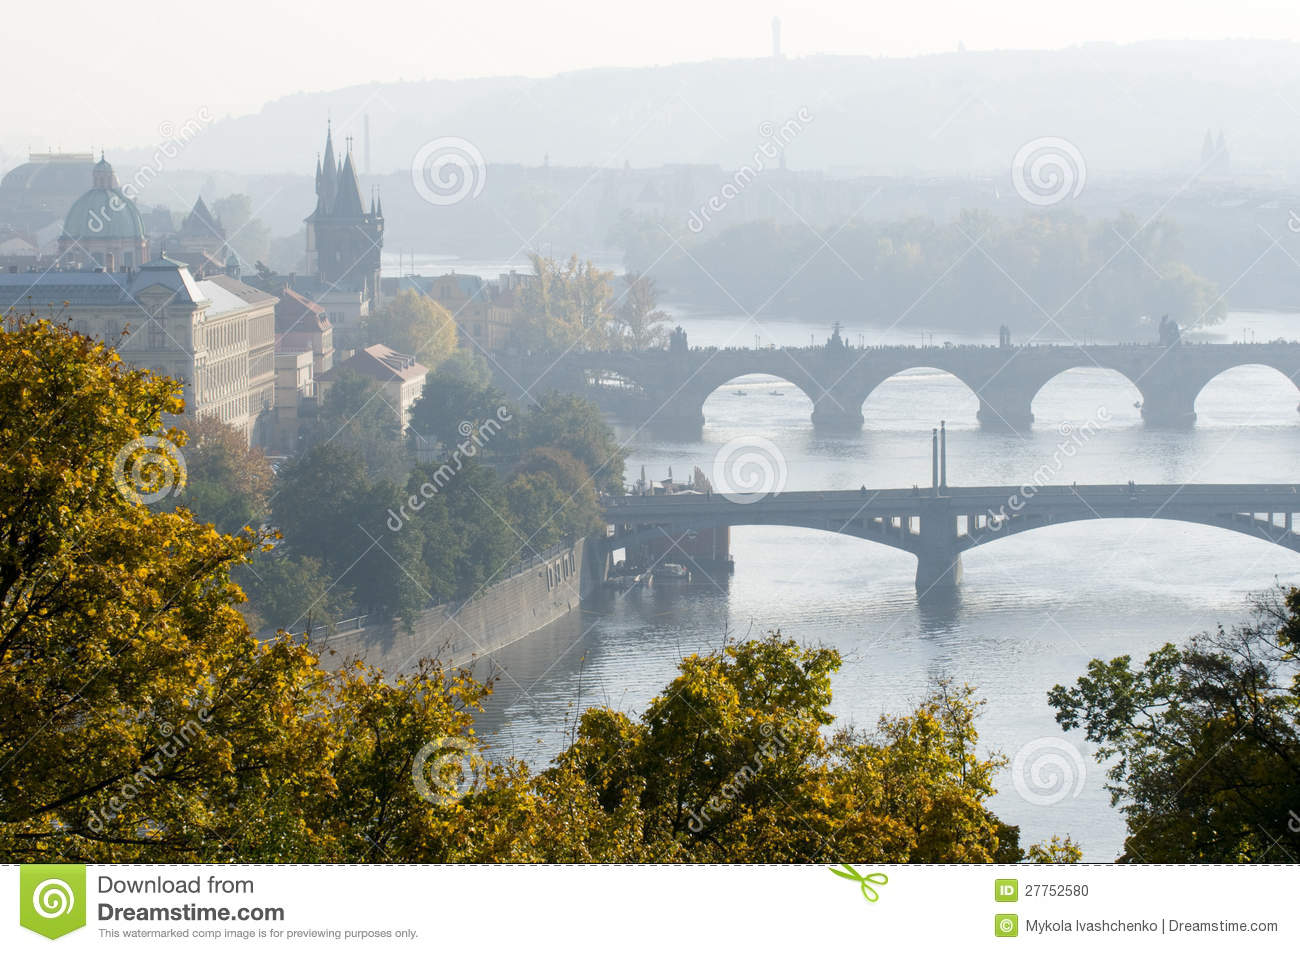 Prague en regain de matin